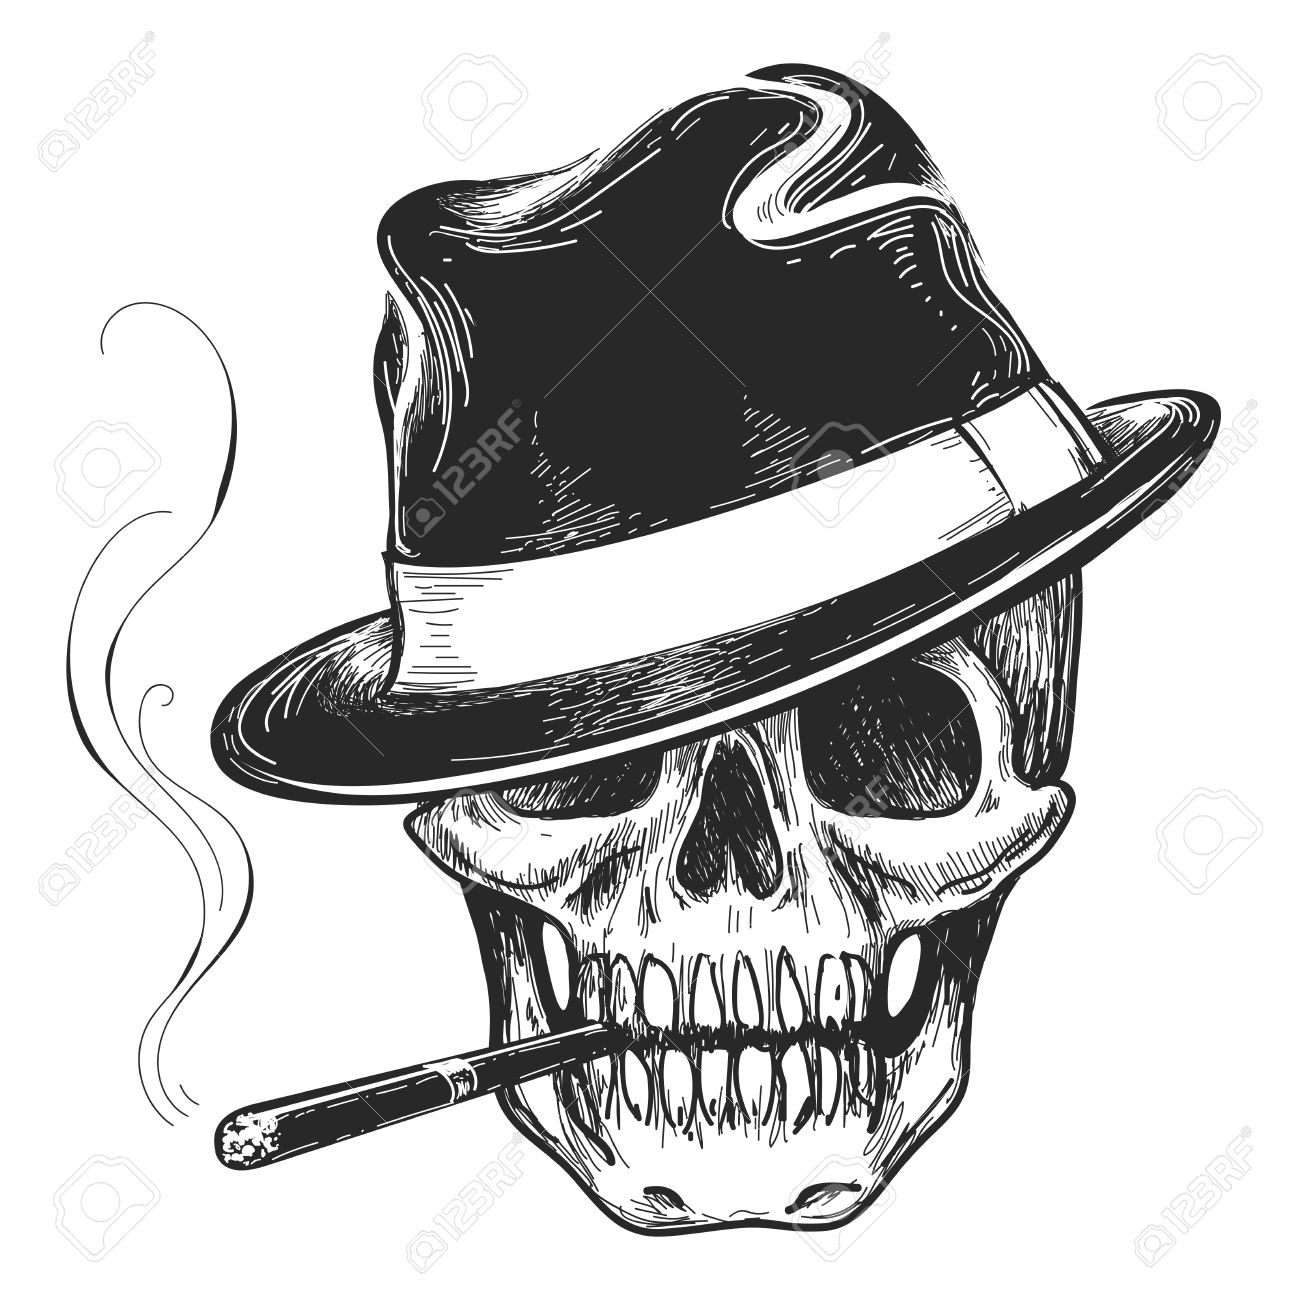 b78be62e74c81 Gangster skull tattoo. Death head with cigar and hat vector illustration  Stock Illustration - 60858280